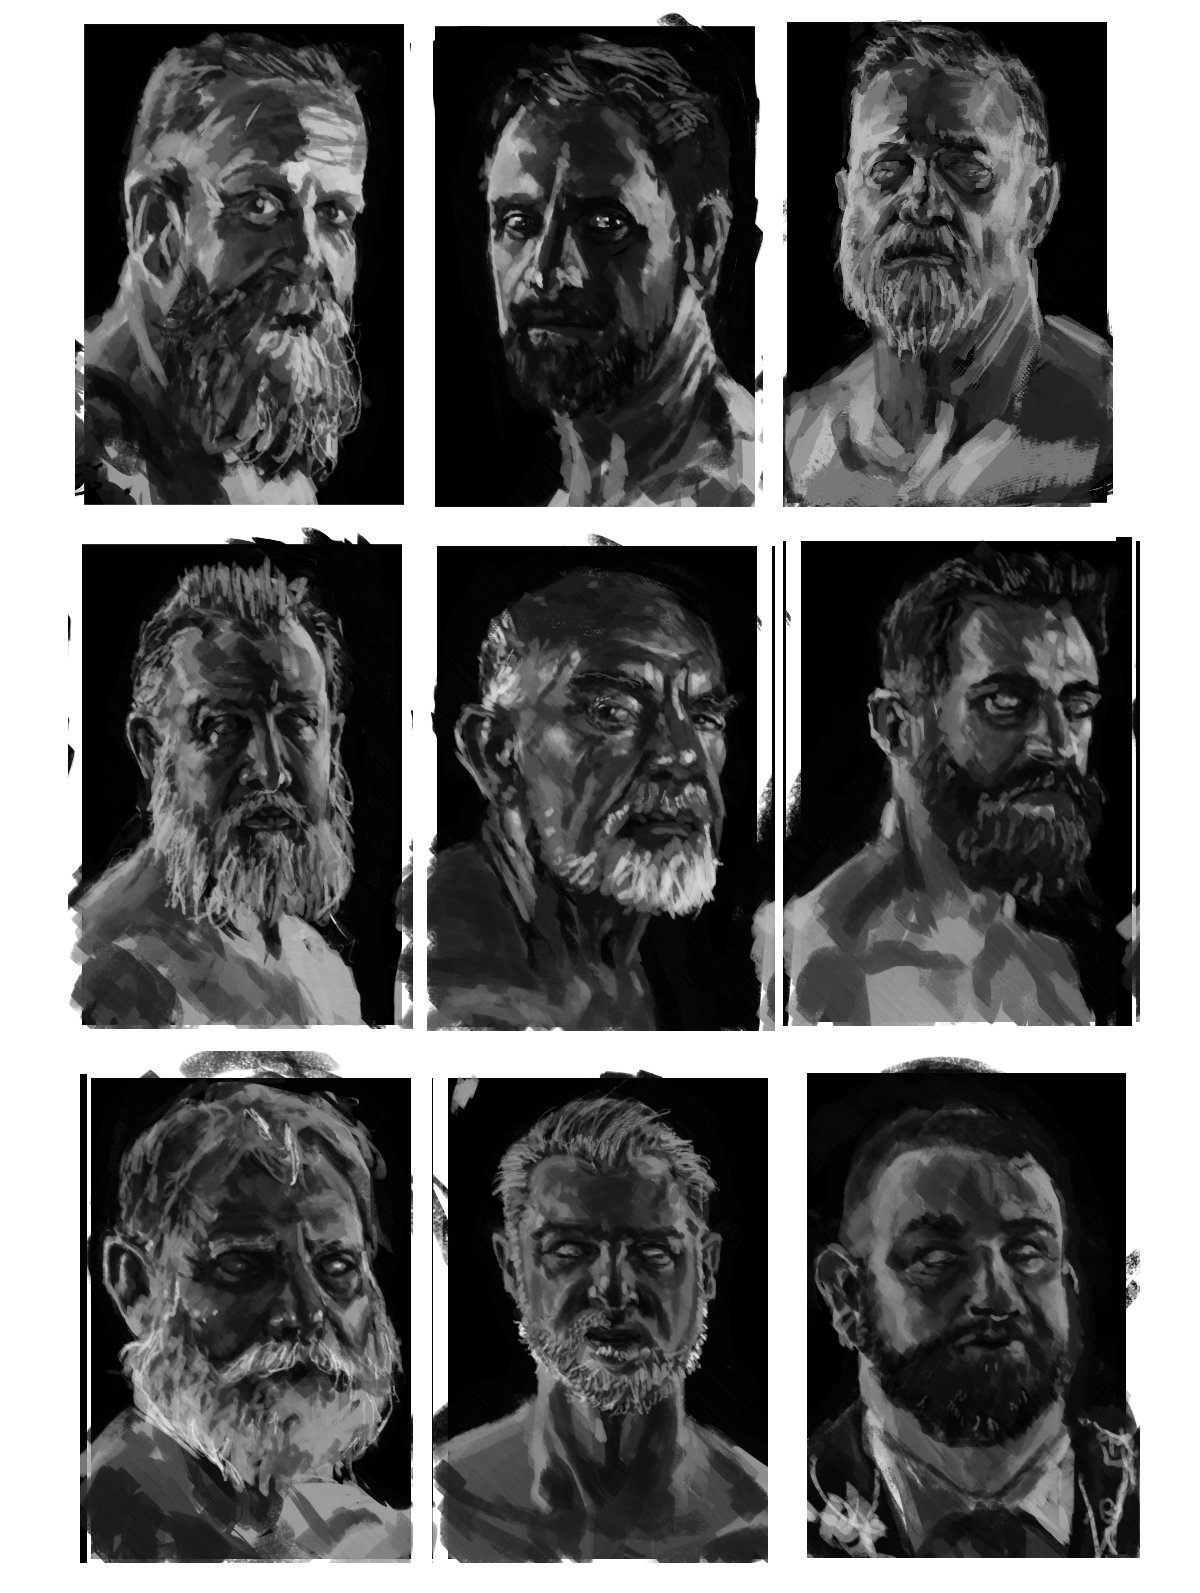 Konrad langa face studies